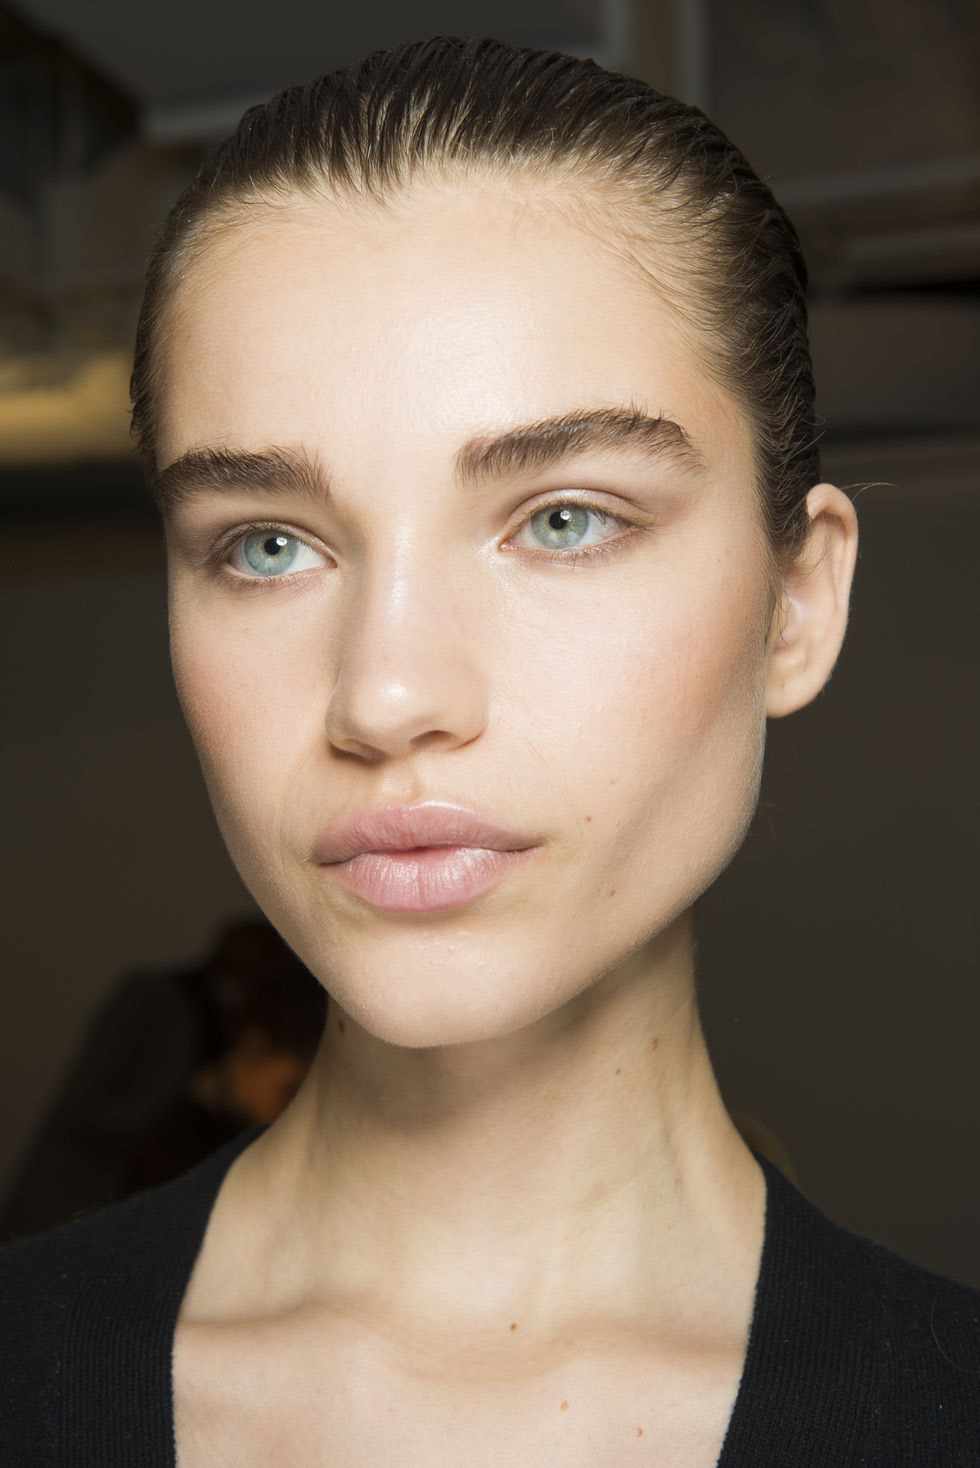 NYC Fashion Week Fall/Winter '18 Brow Trends 5